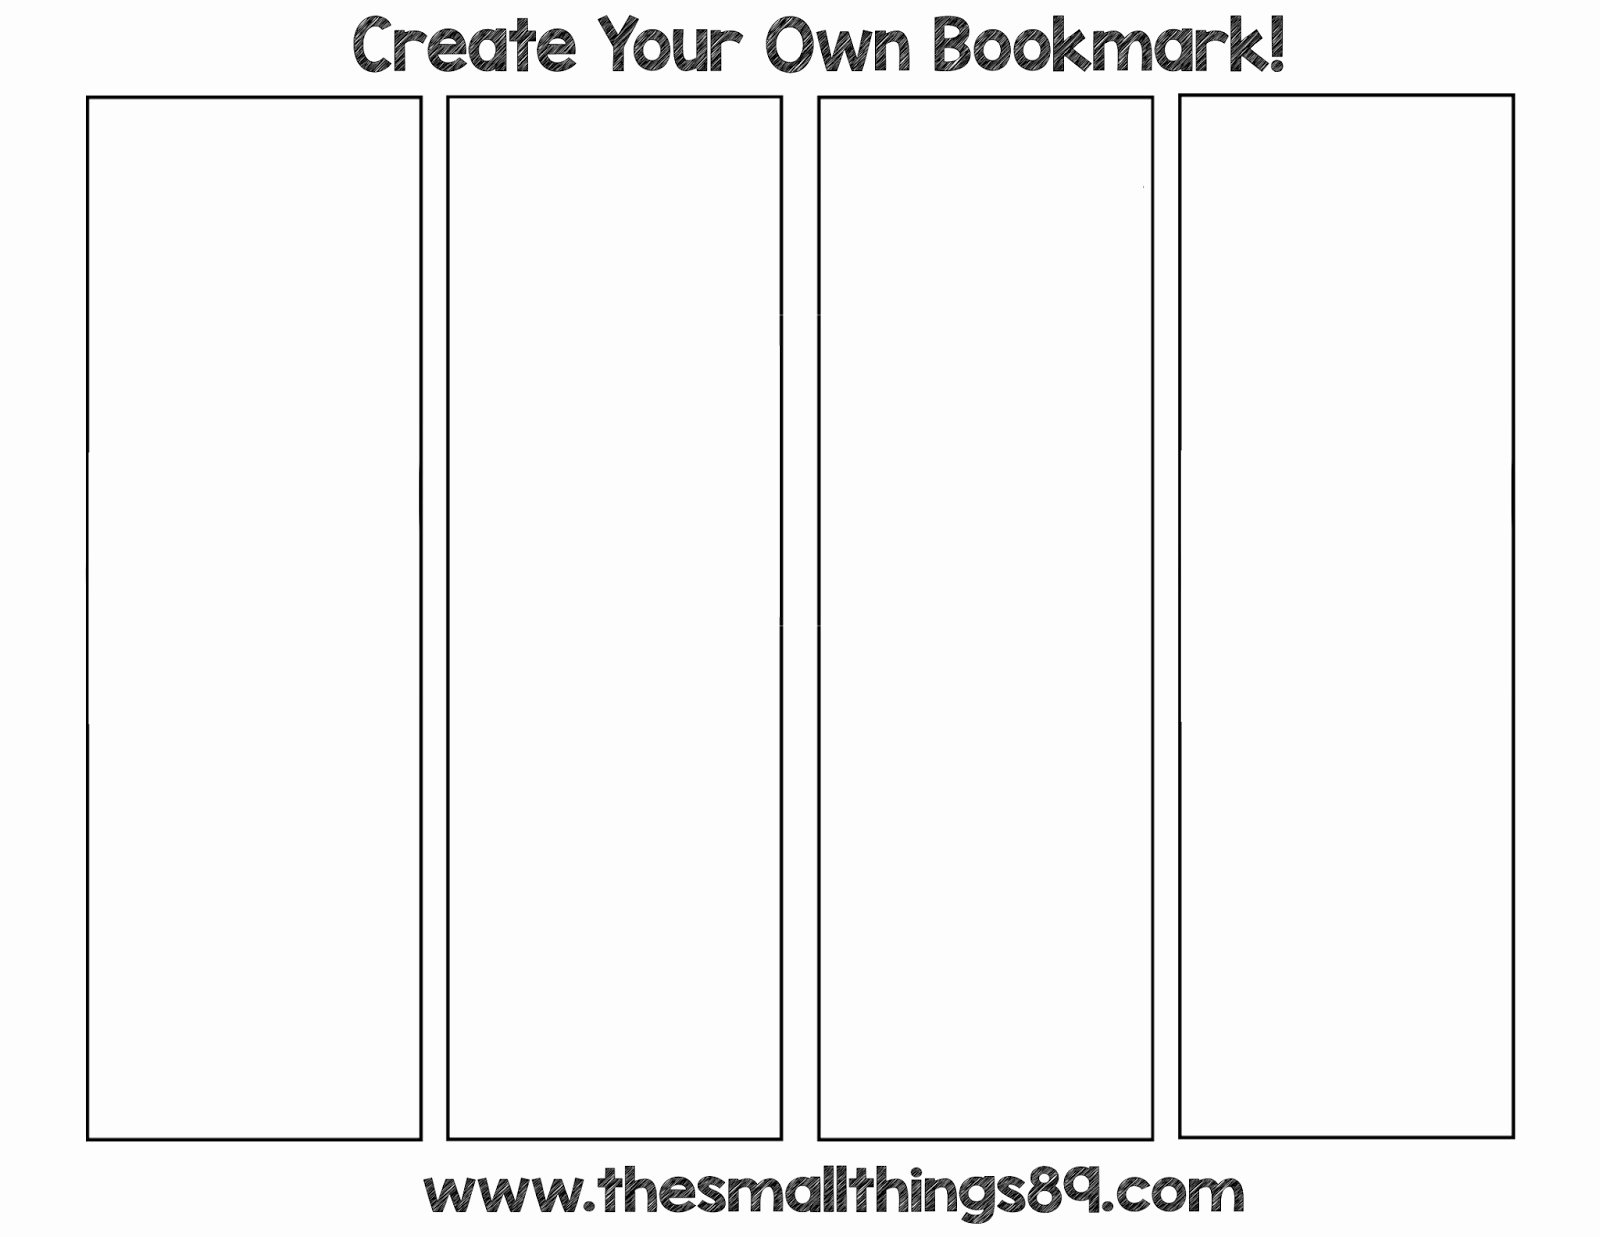 Blank Bookmark Template Word Inspirational Back to School with Crayola Products Score Printable